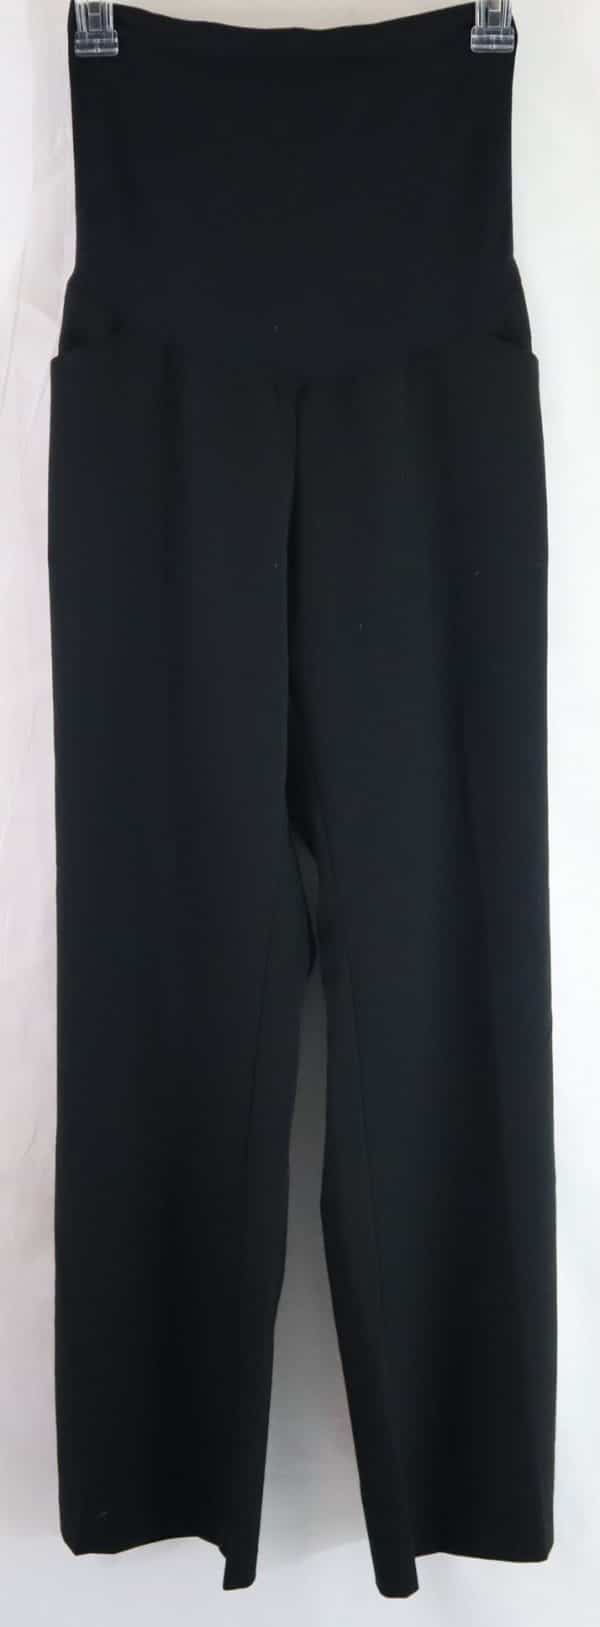 maternity dress pants, used maternity clothes, motherhood maternity